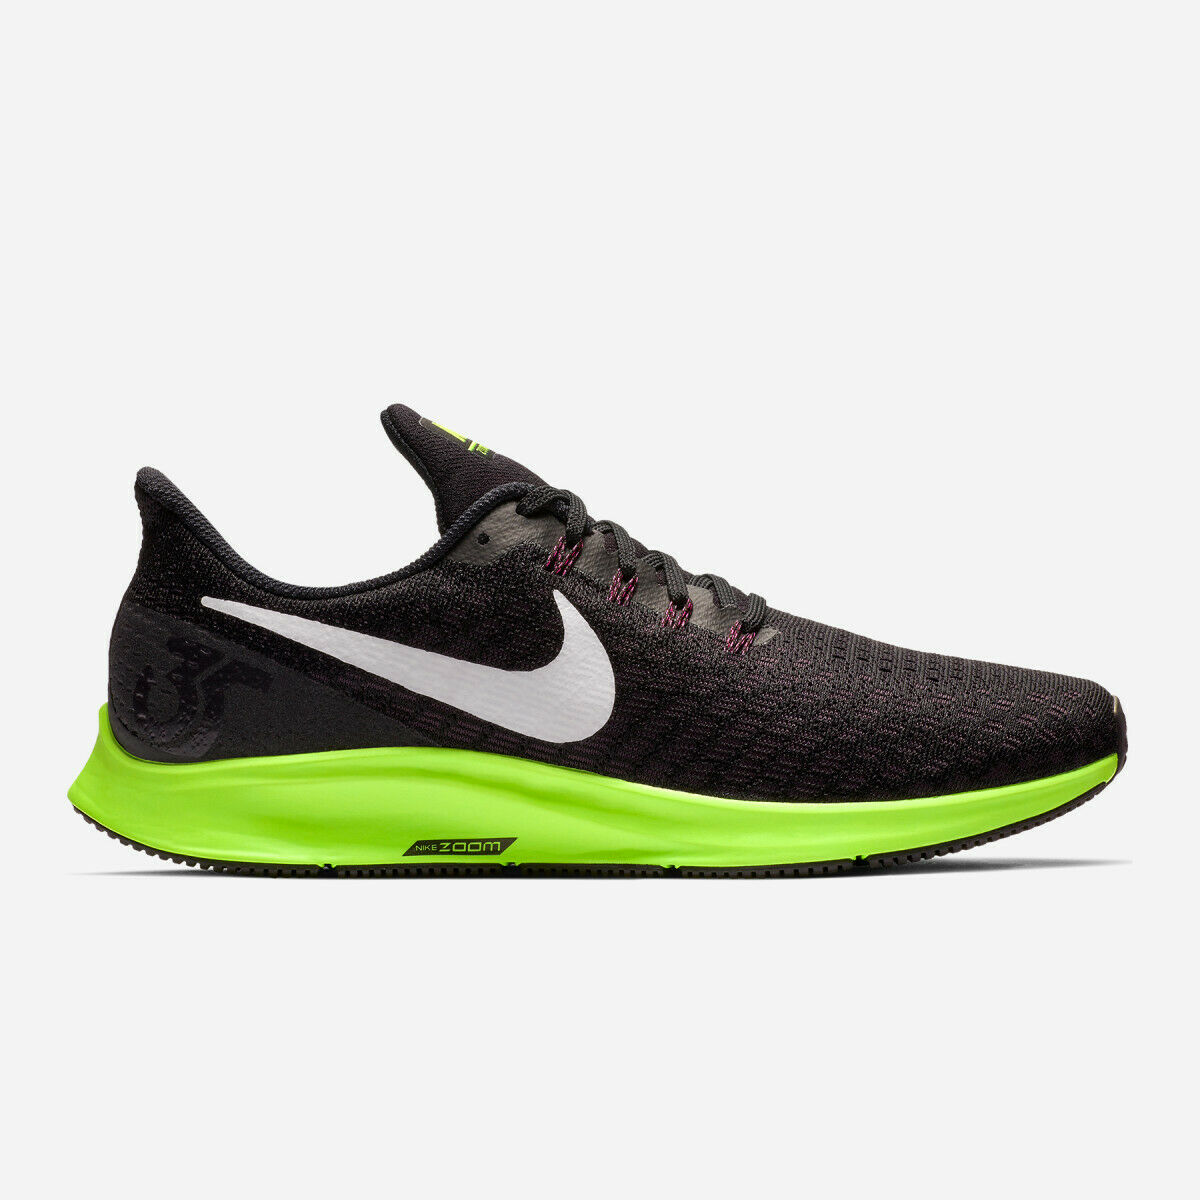 New Nike Men's Air Zoom Pegasus 35 shoes (942851-016)  Black White-Burgundy-Lime